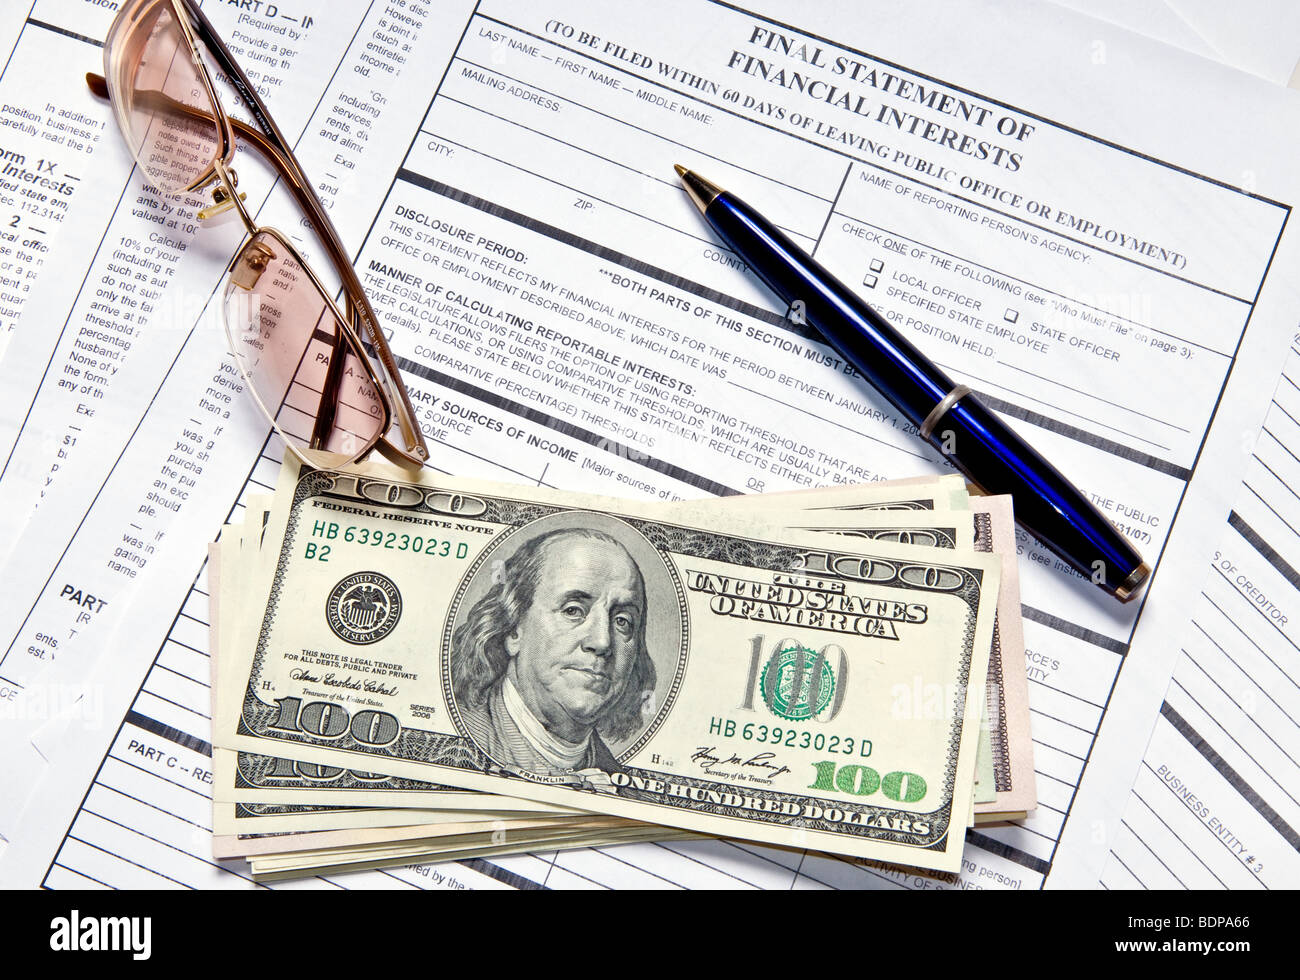 Income Tax Form and a pen to complete the forms - Stock Image